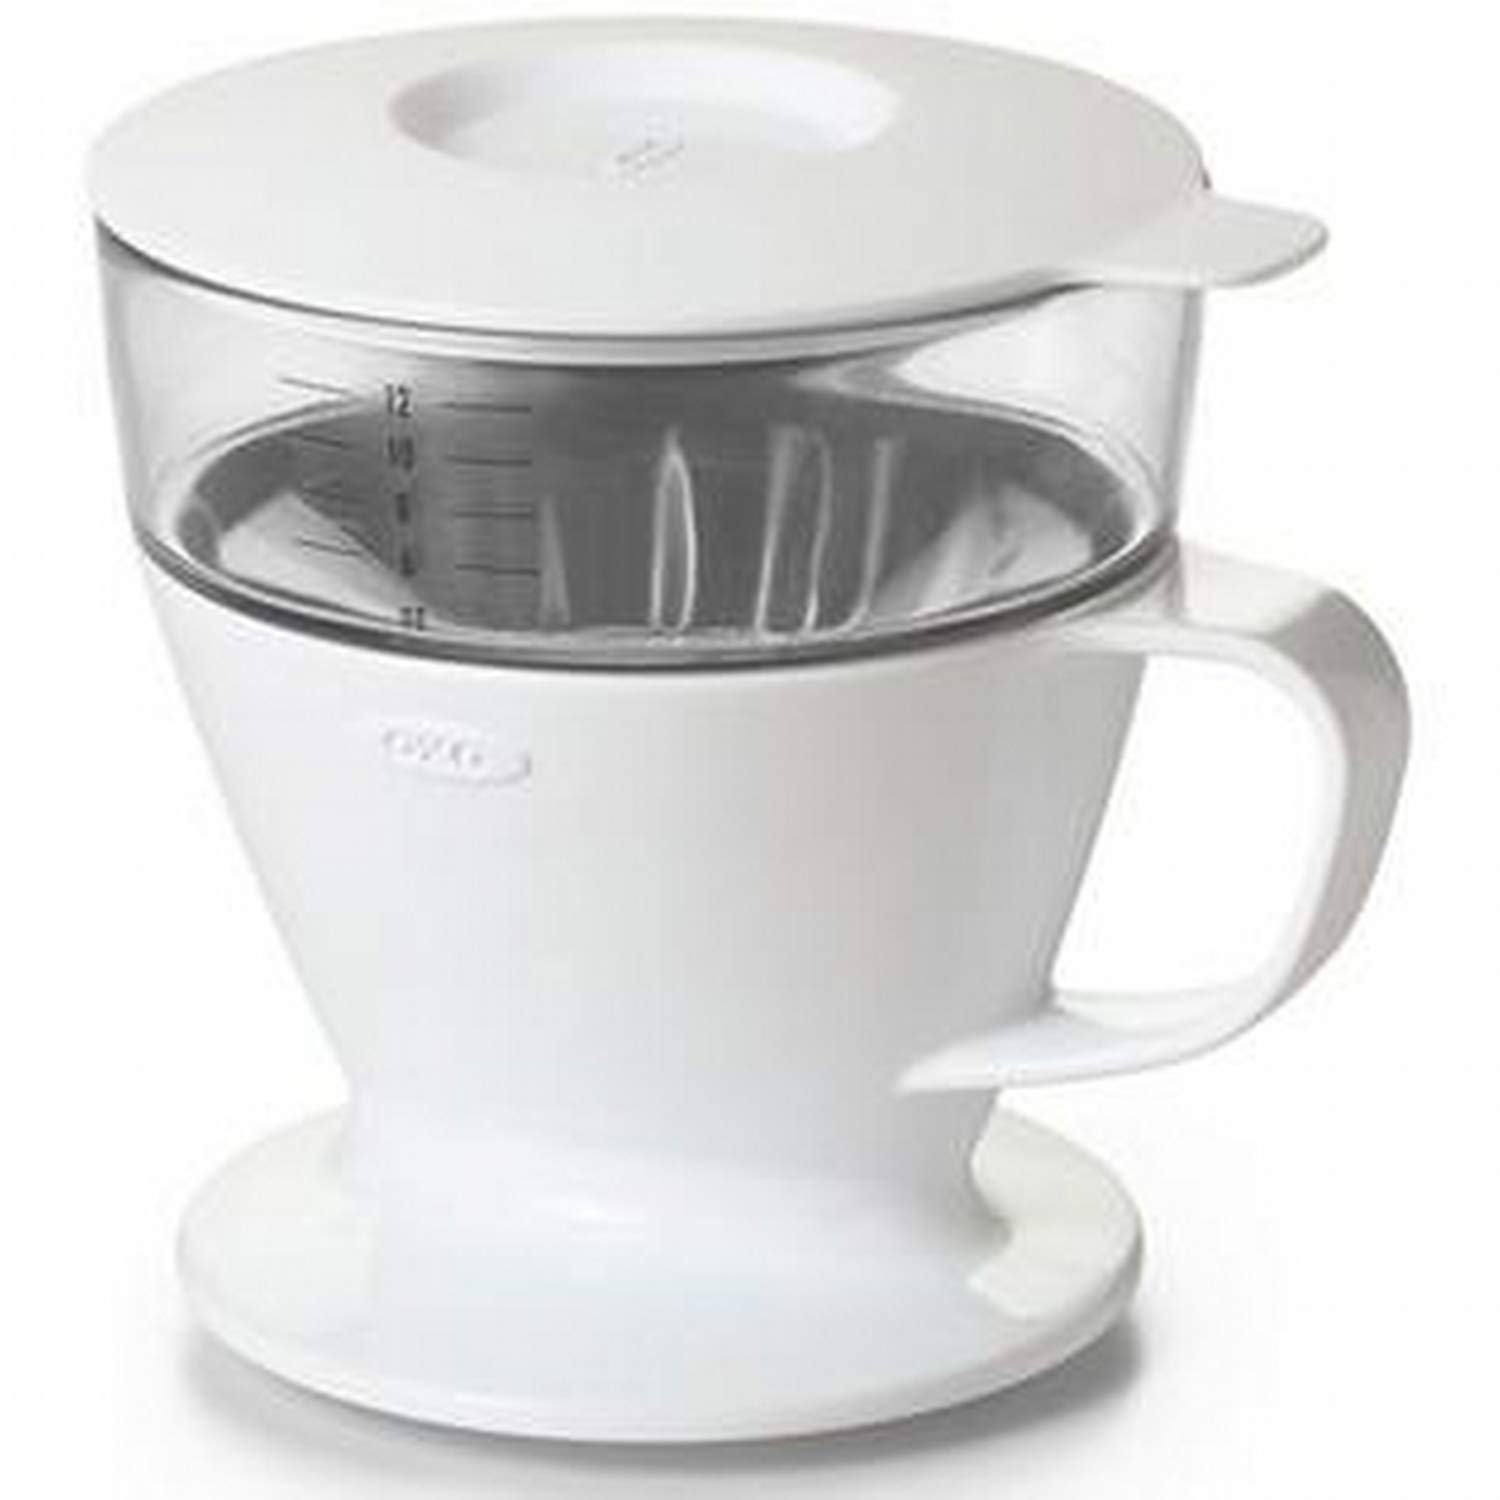 OXO Good Grips Single Serve Pour Over Coffee Dripper with Auto-Drip Water Tank